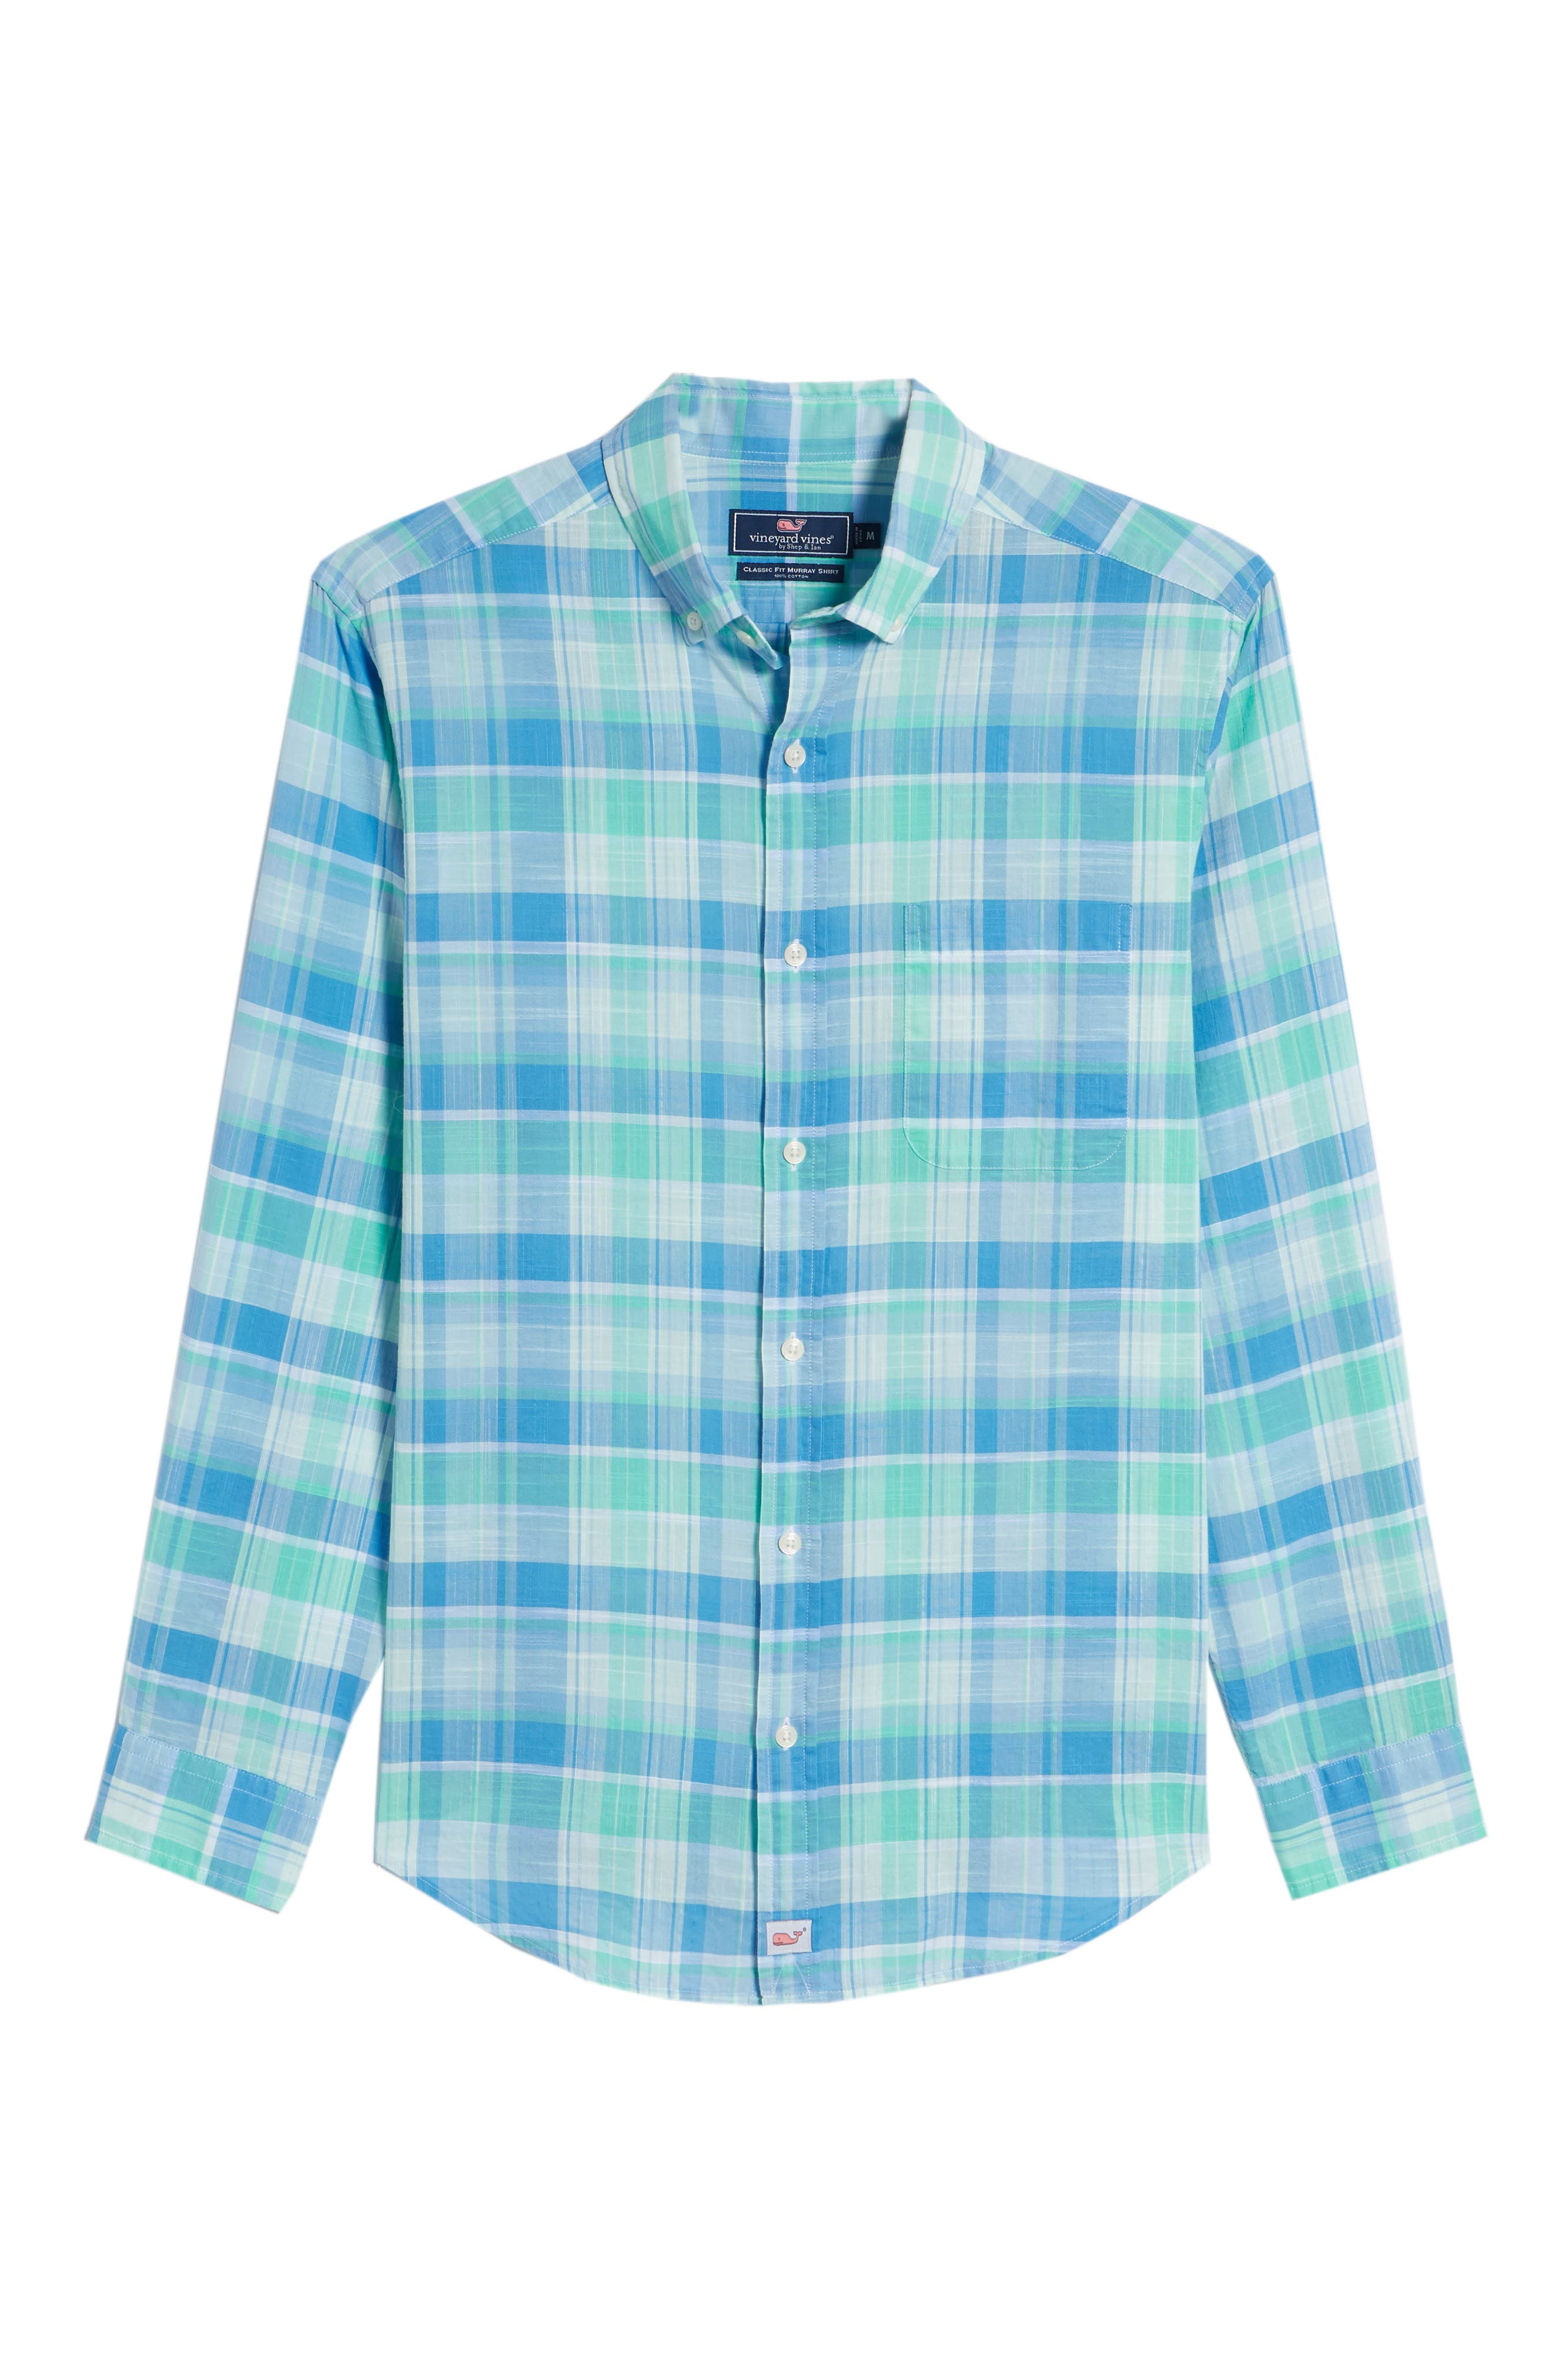 Homer Pond Murray Classic Fit Plaid Sport Shirt,                             Alternate thumbnail 6, color,                             359